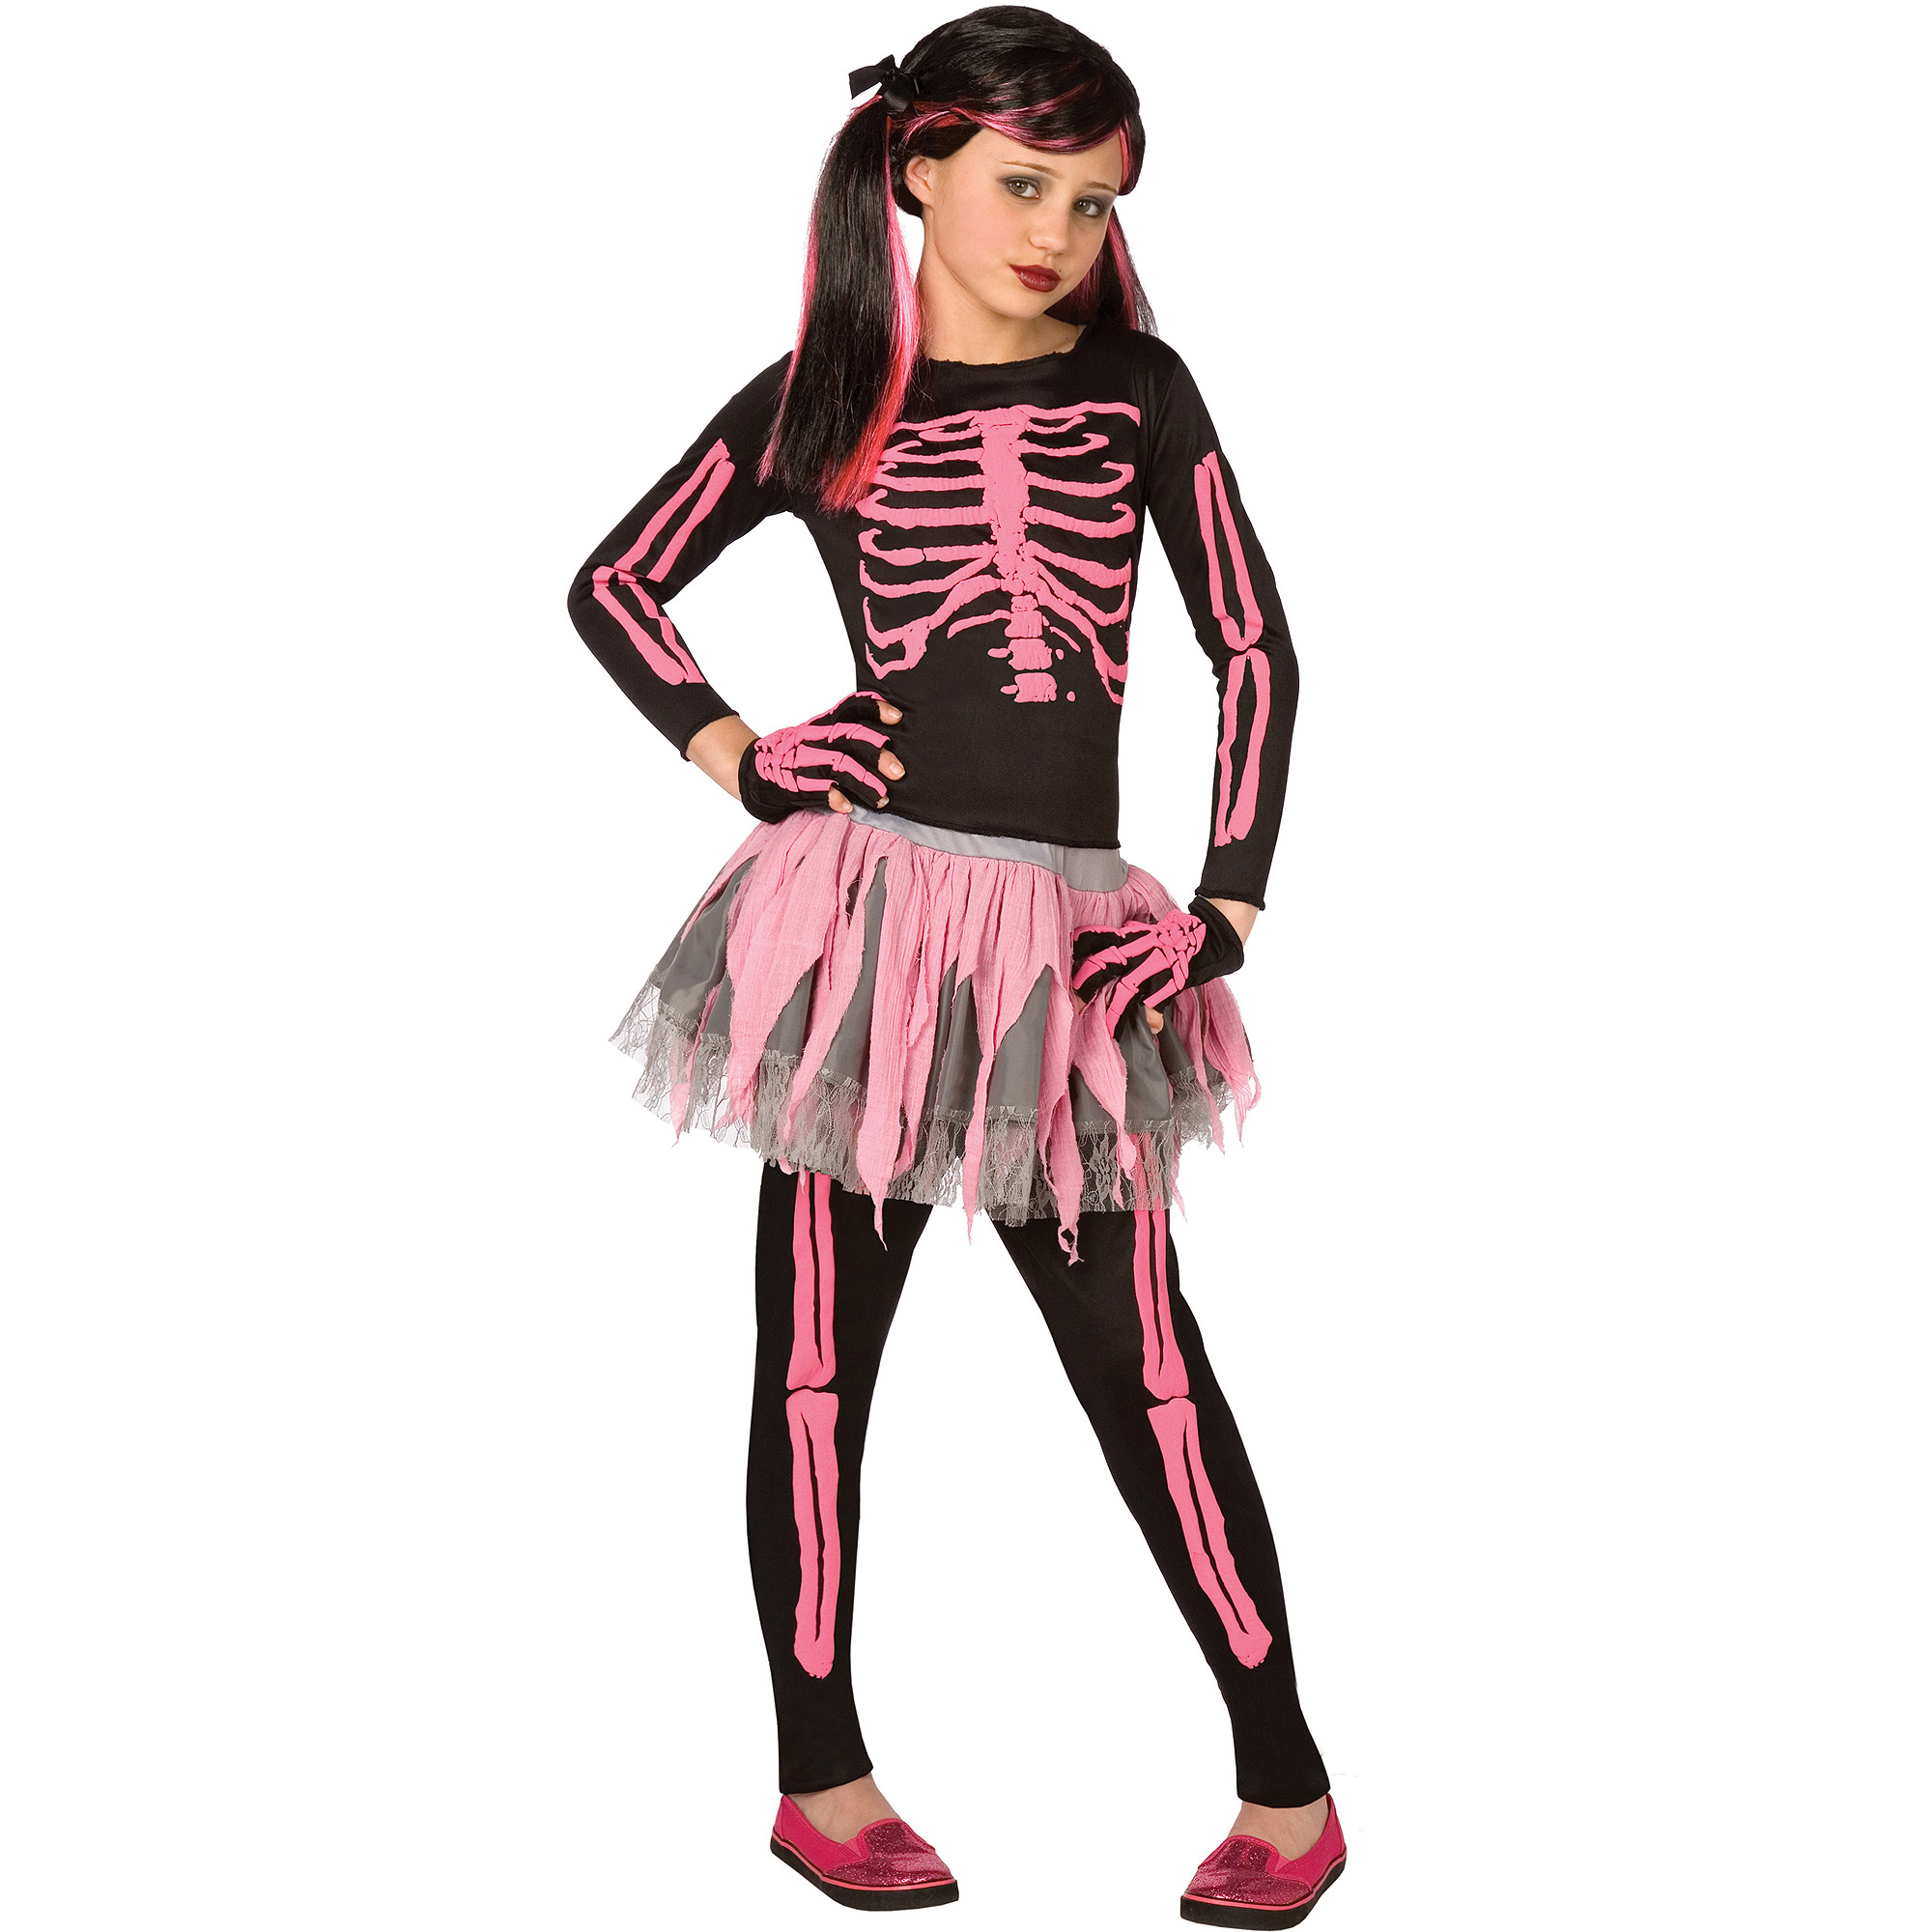 Girl Pink Skeleton Medium Halloween Dress Up / Role Play Costume  sc 1 st  Walmart & Girlsu0027 Skeleton Costumes